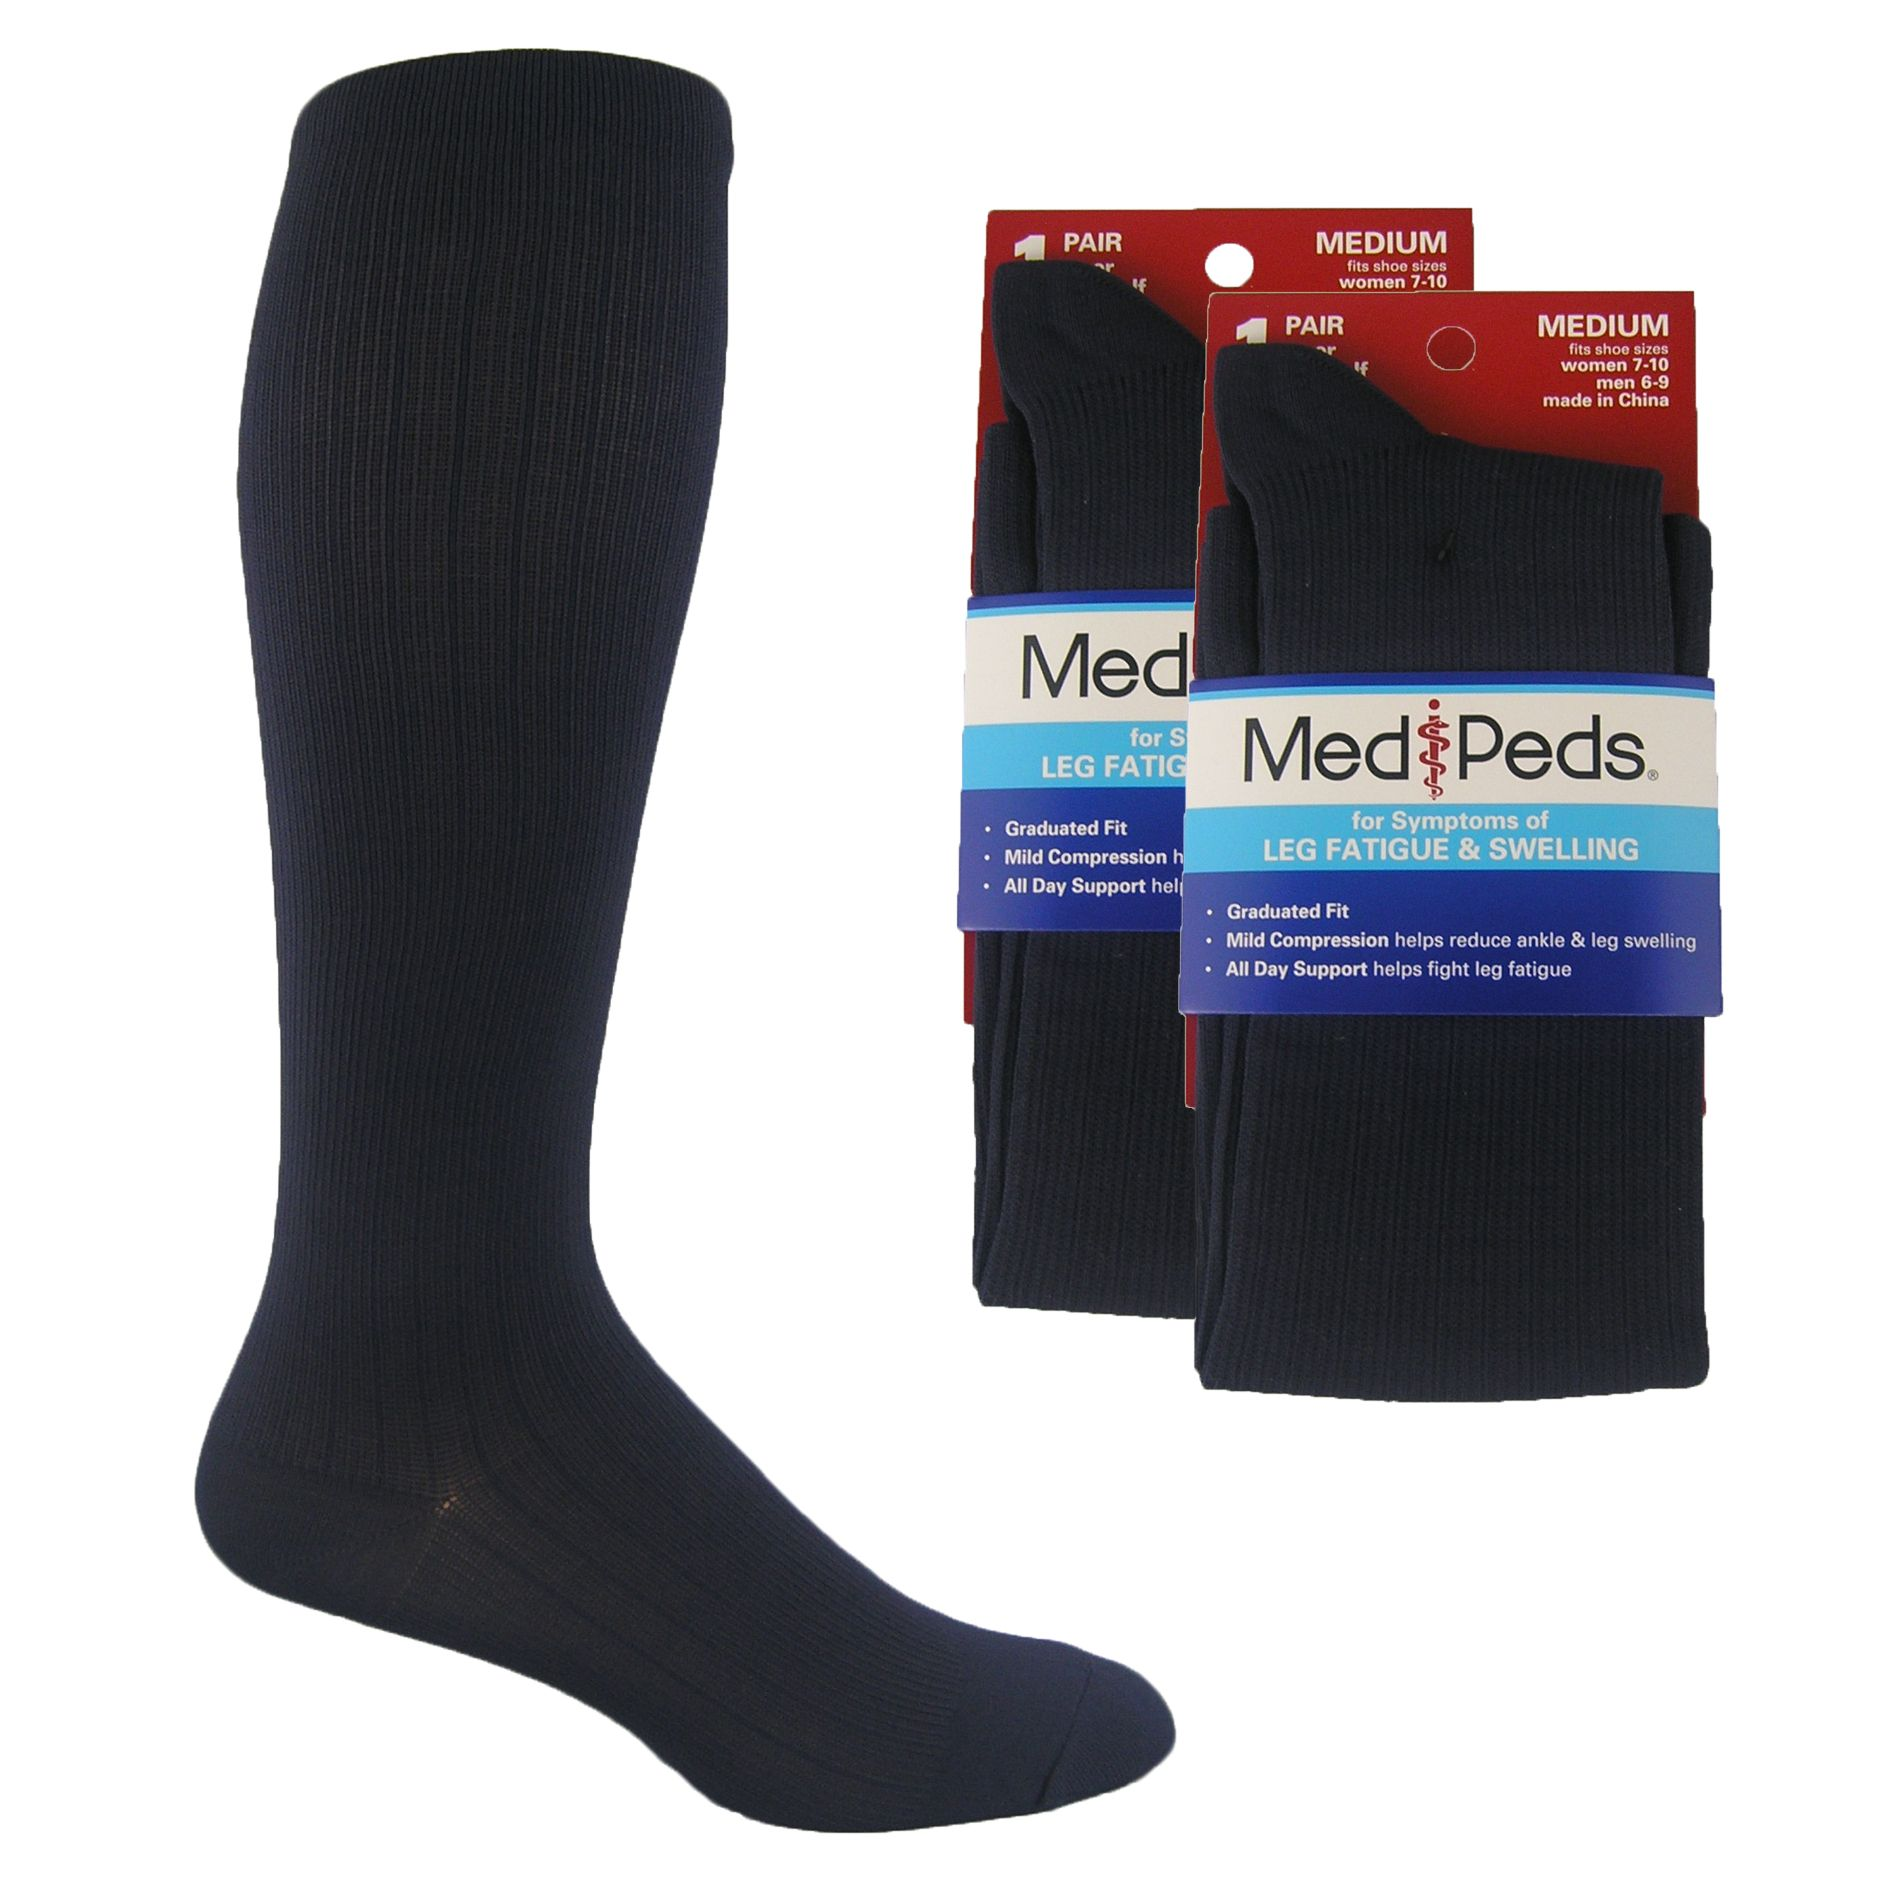 dfee285d95 These MediPeds are compression over the calf socks made of Nylon for everyday  dress. The